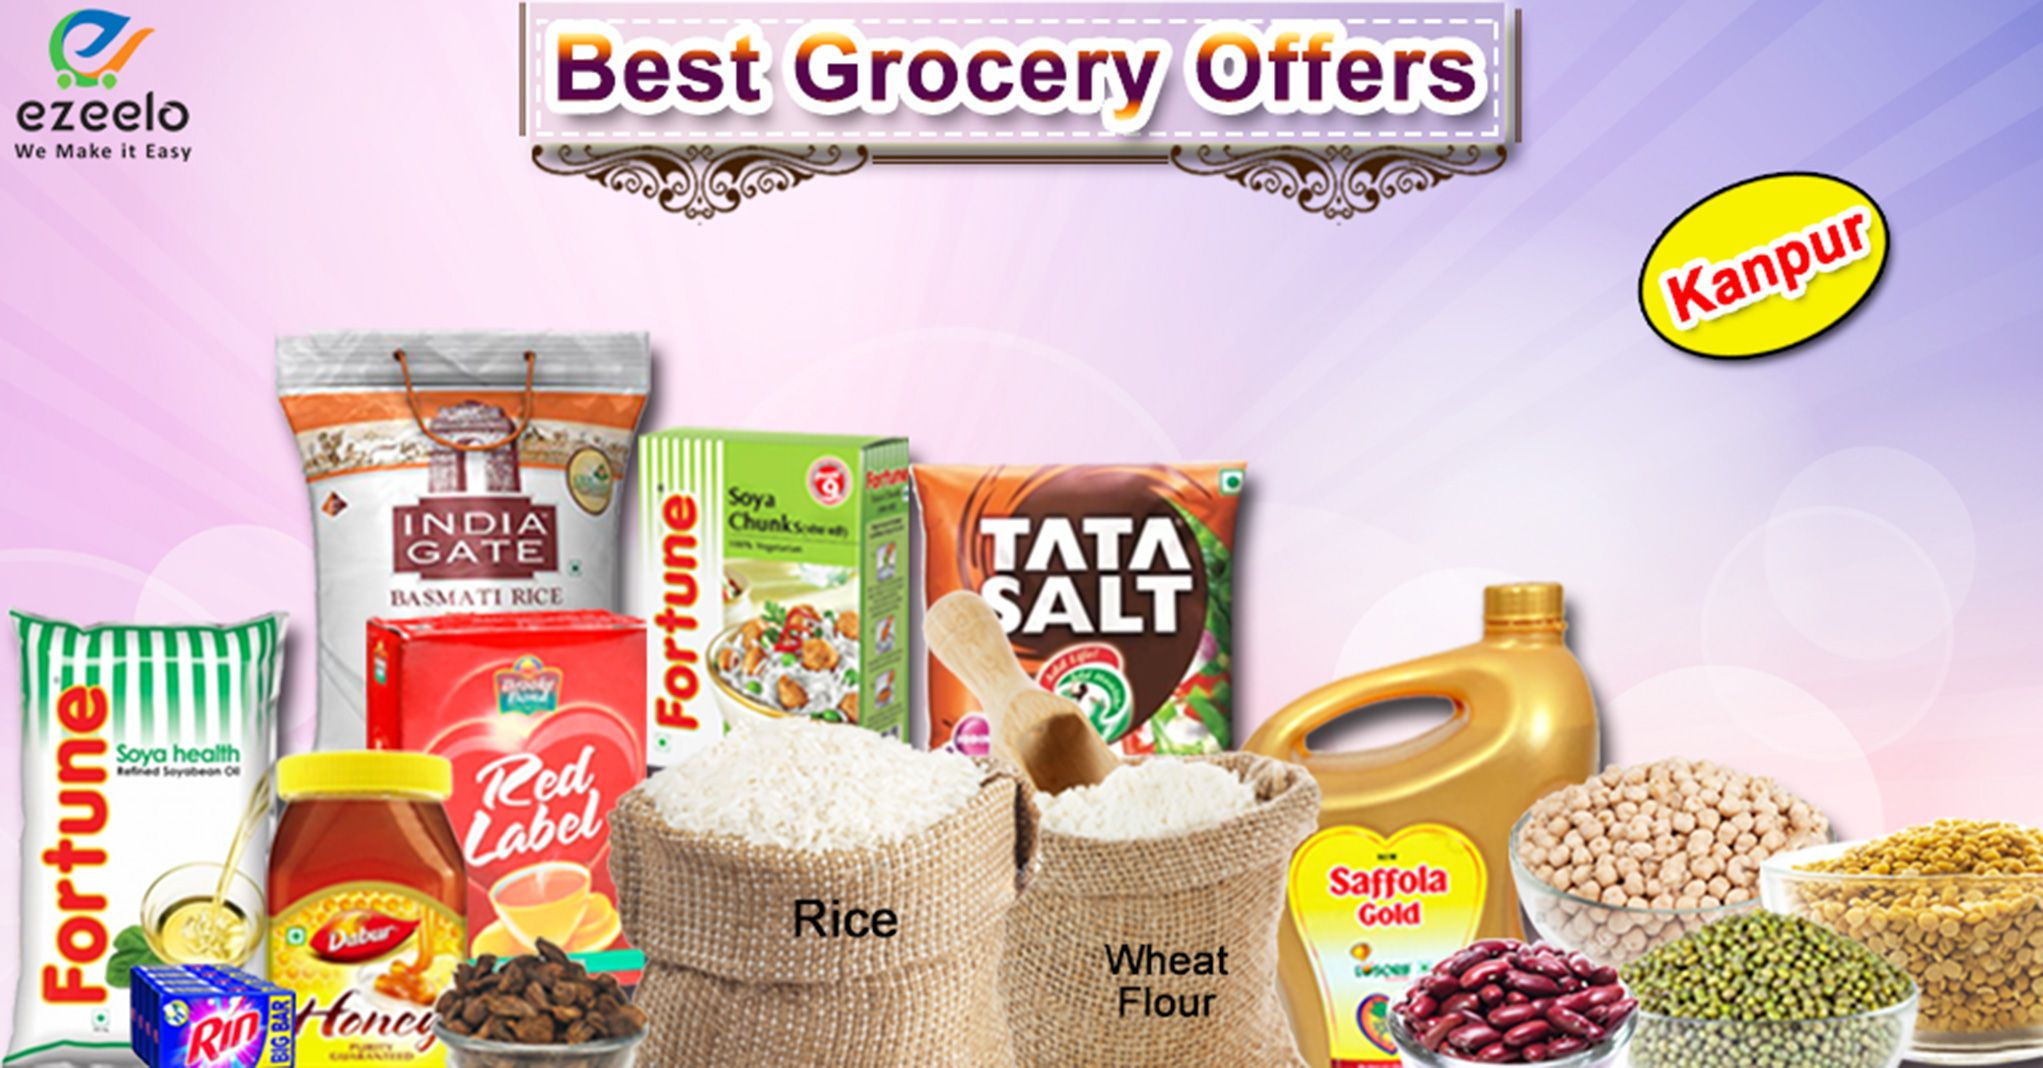 ezeelo offer huge Discount & saving on all Grocery (Kirana